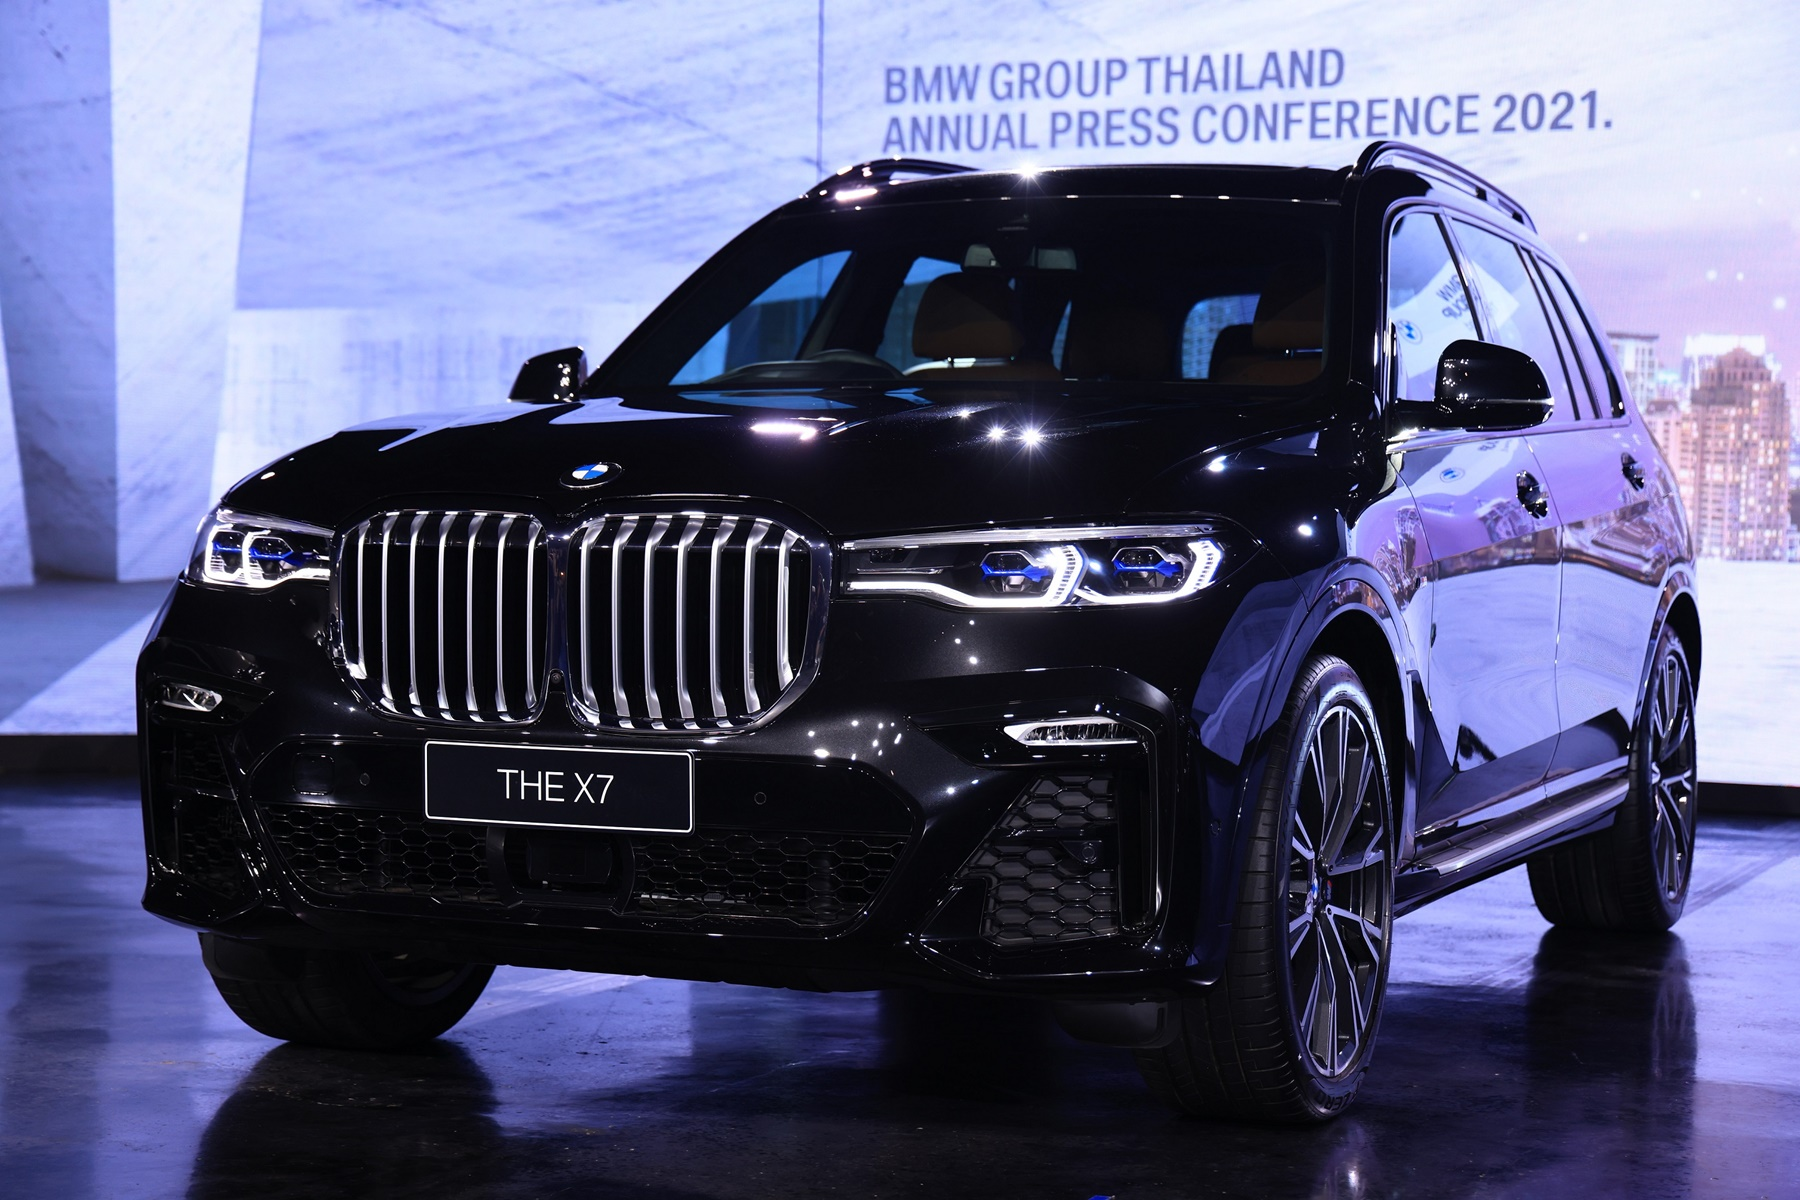 BMW Group Thailand Annual Press Con 2021 (2)